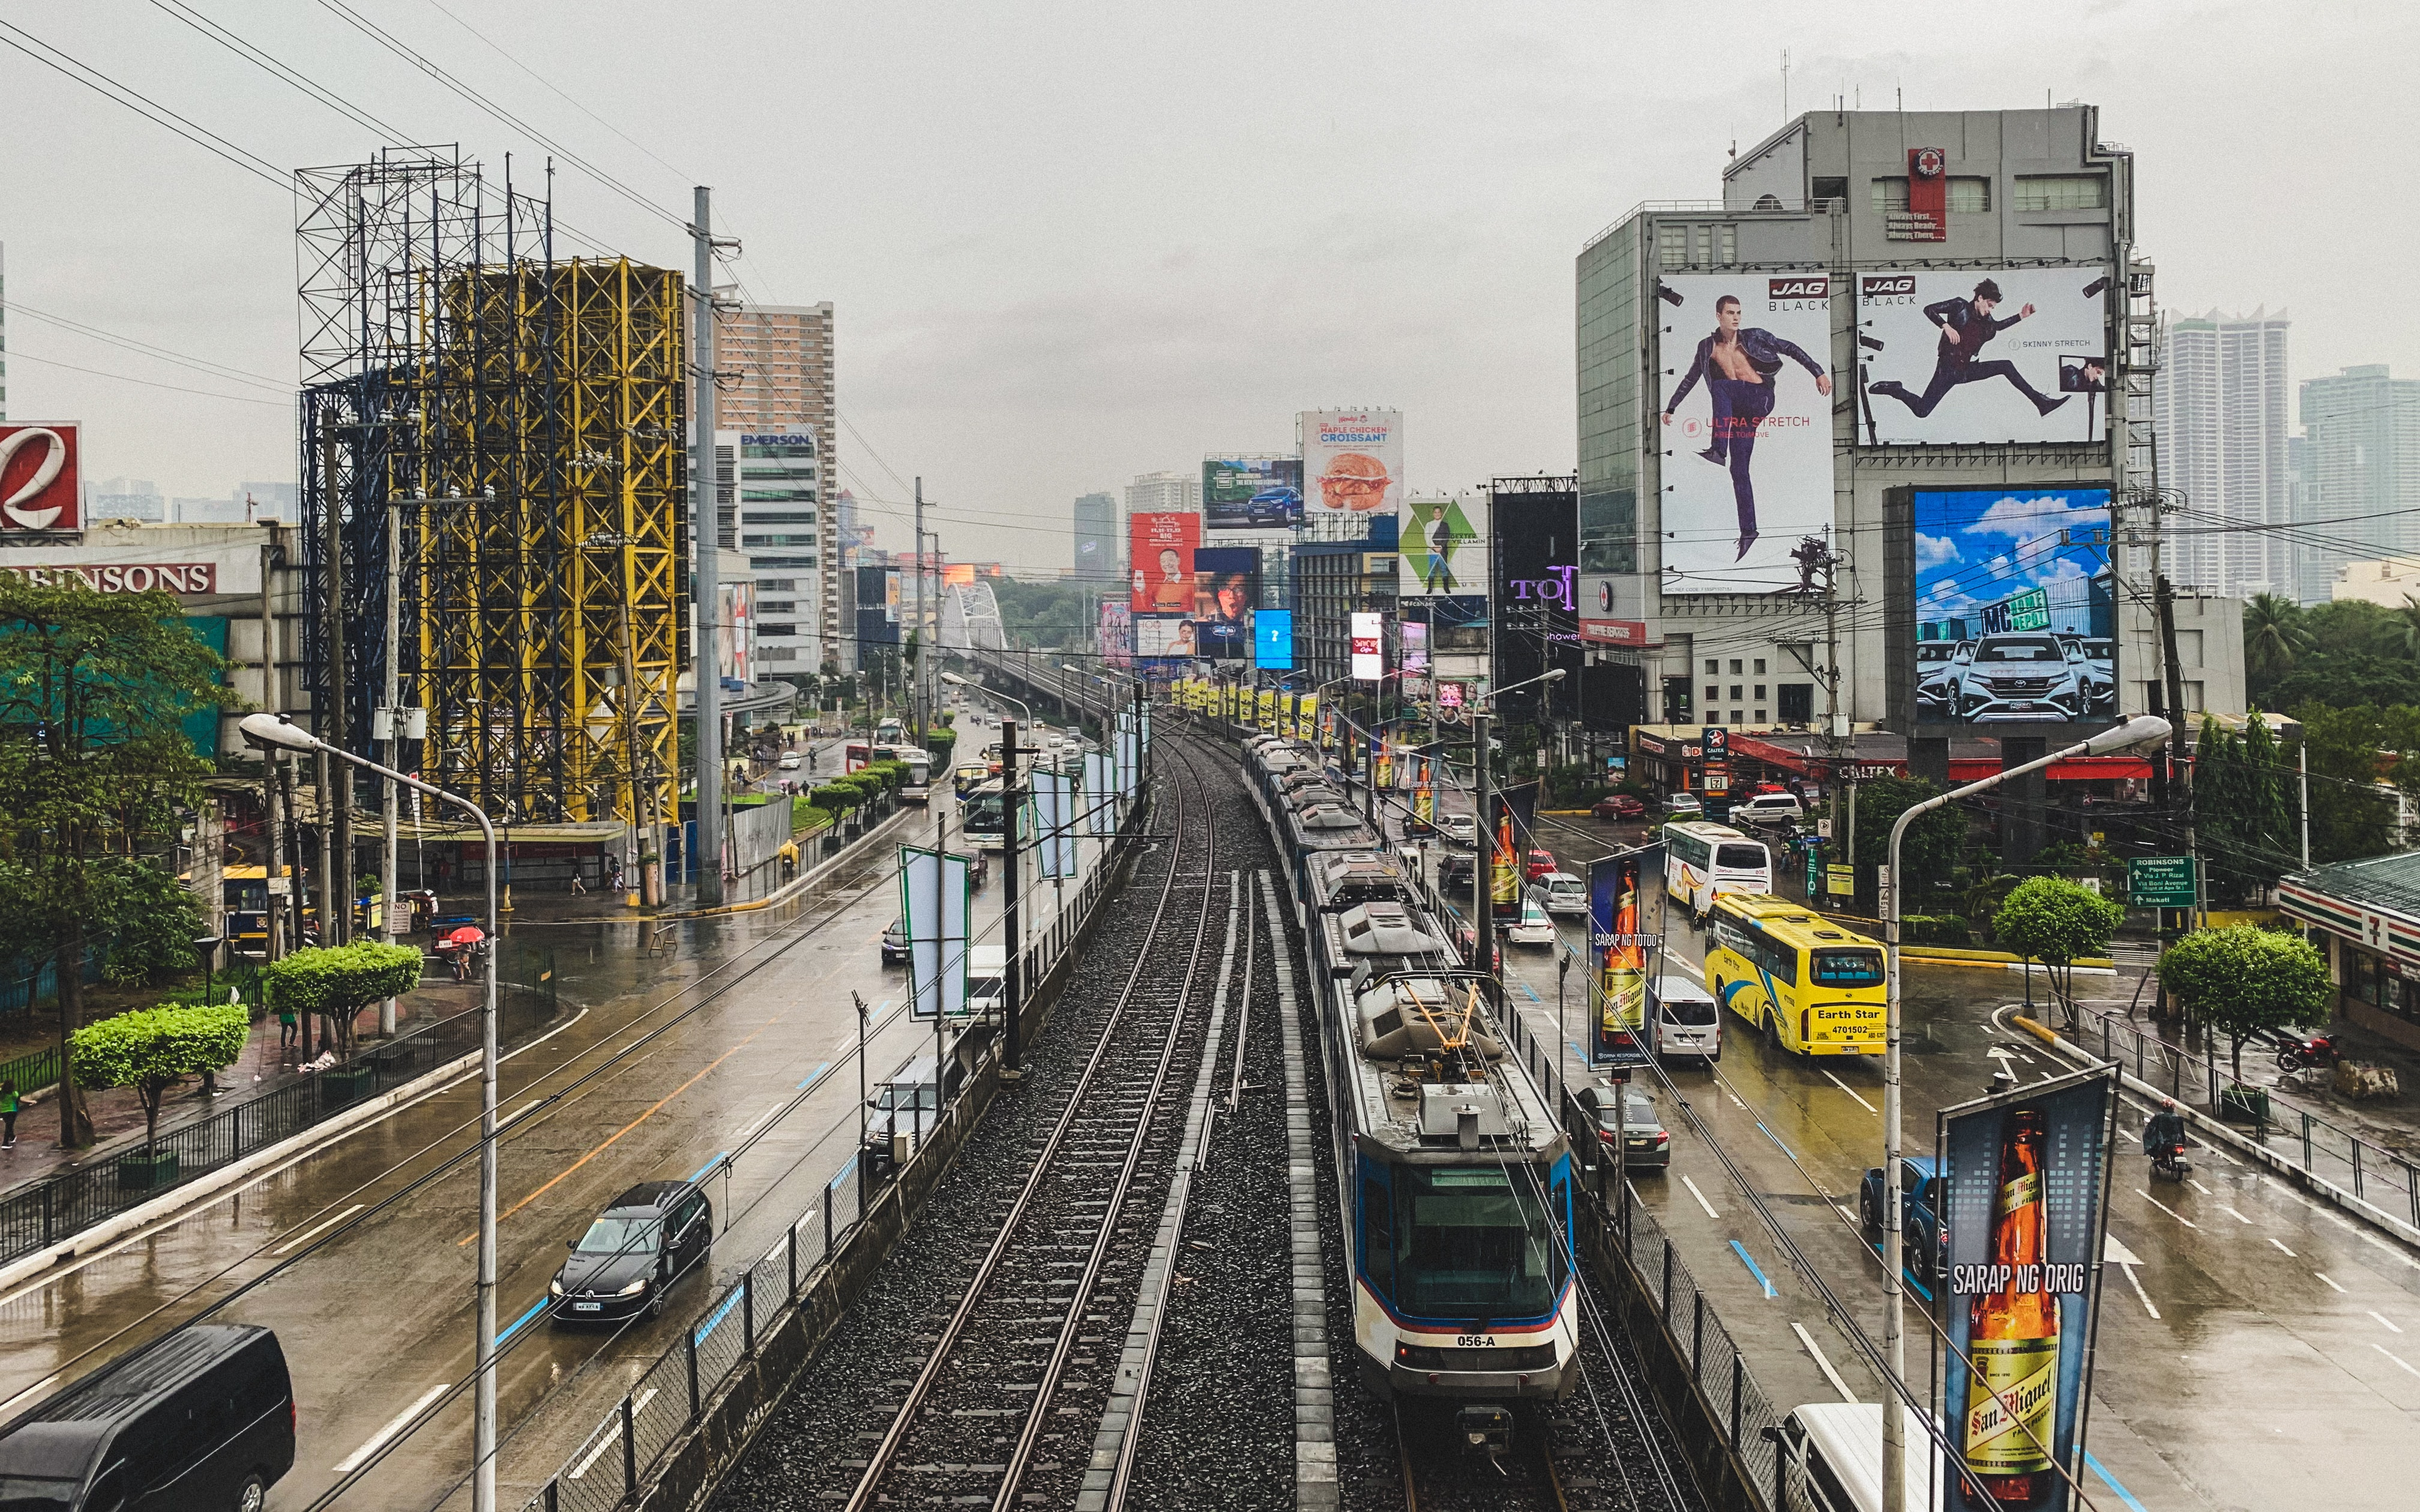 aerial photo of EDSA, Mandaluyong, Philippines